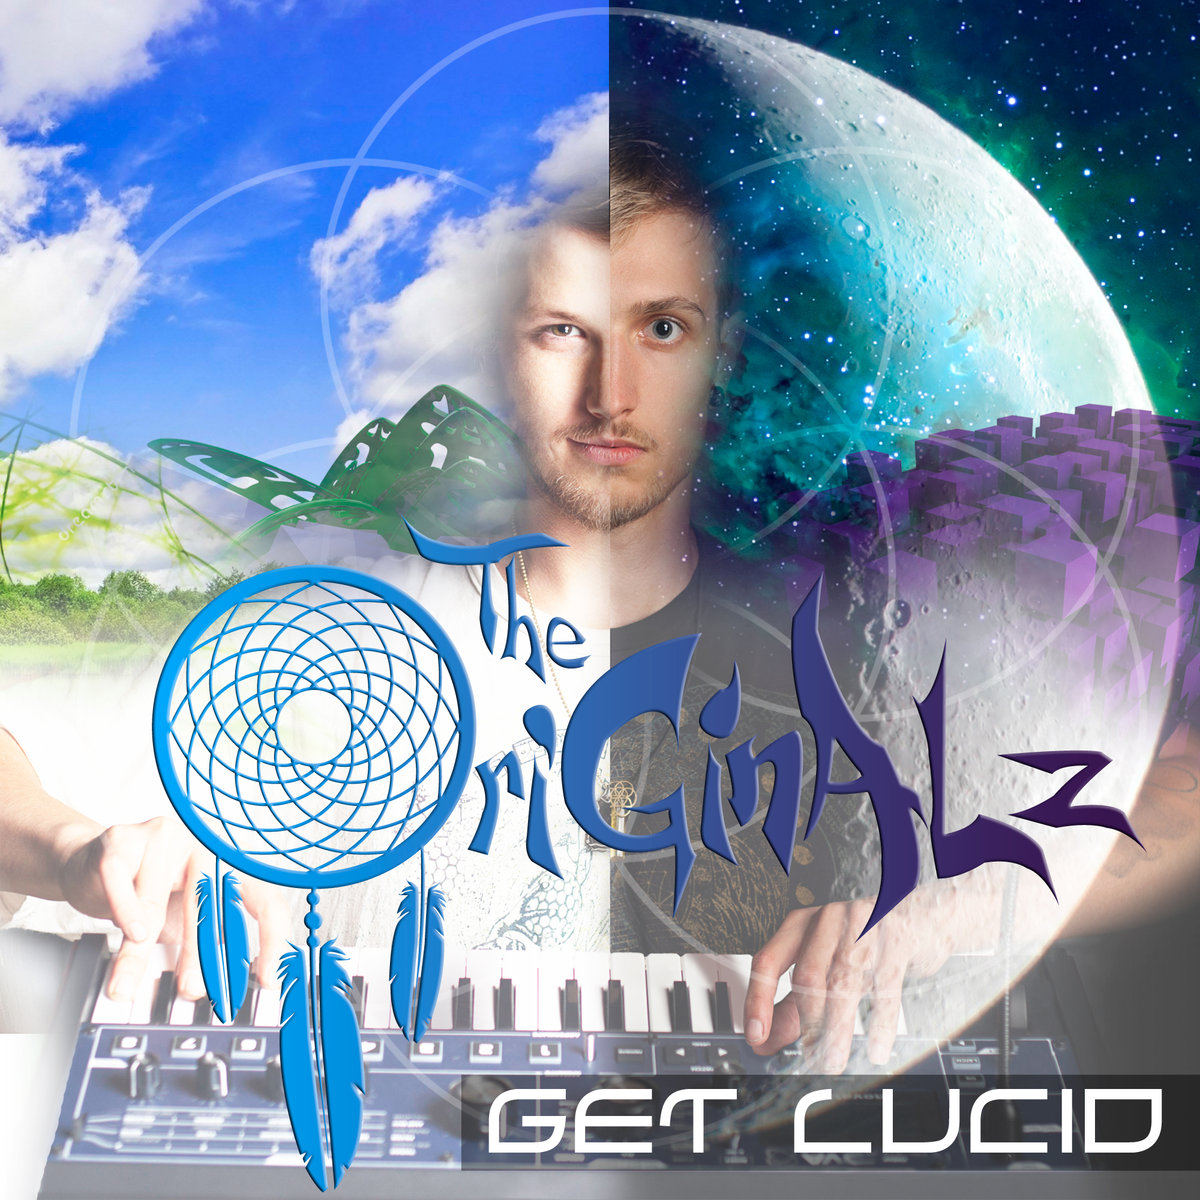 The OriGinALz - Abnormal Existence @ 'Get Lucid' album (Austin)